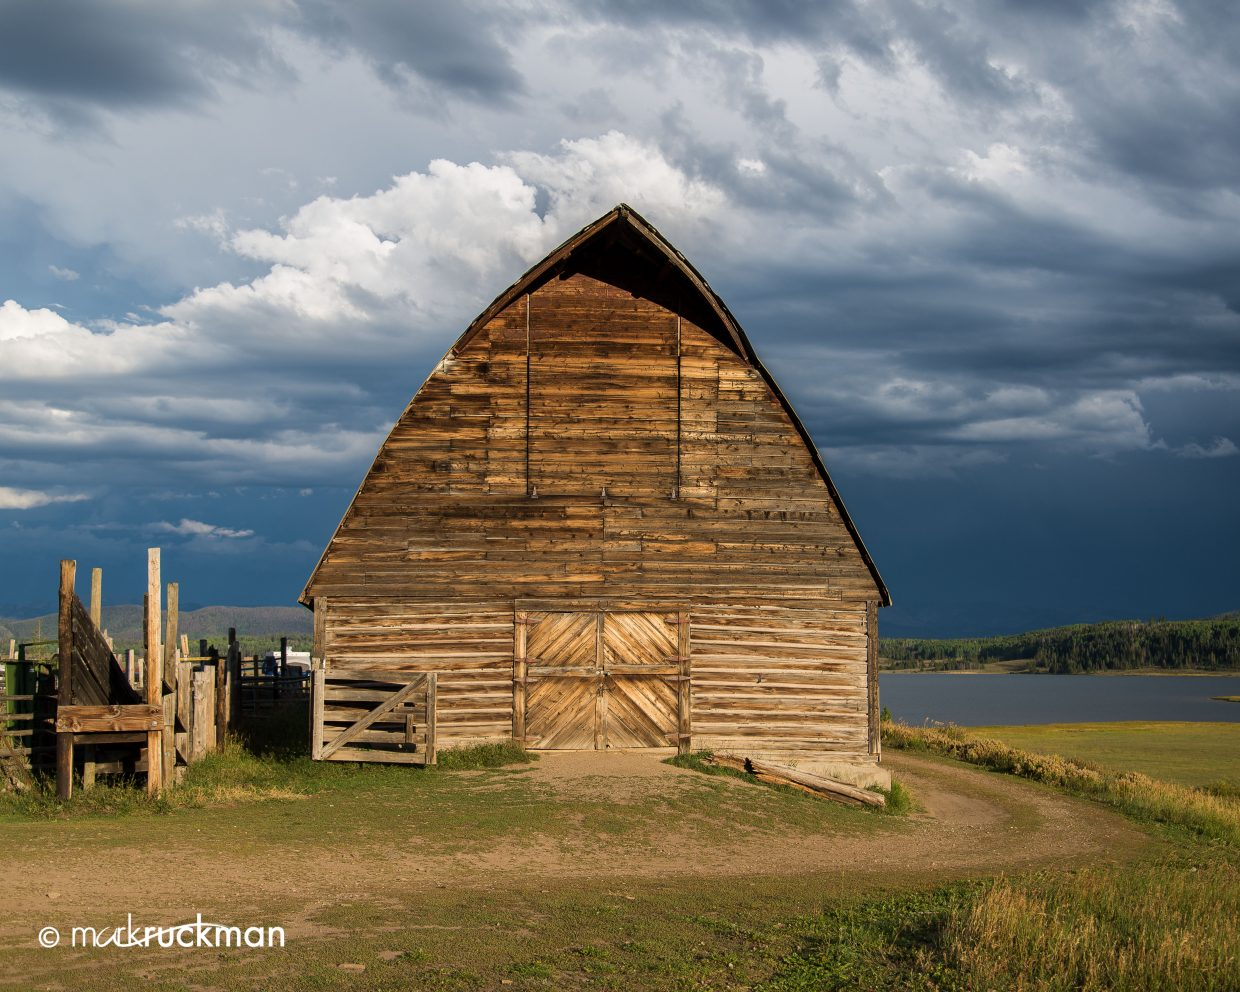 Stormy barn. Submitted by: Mark Ruckman